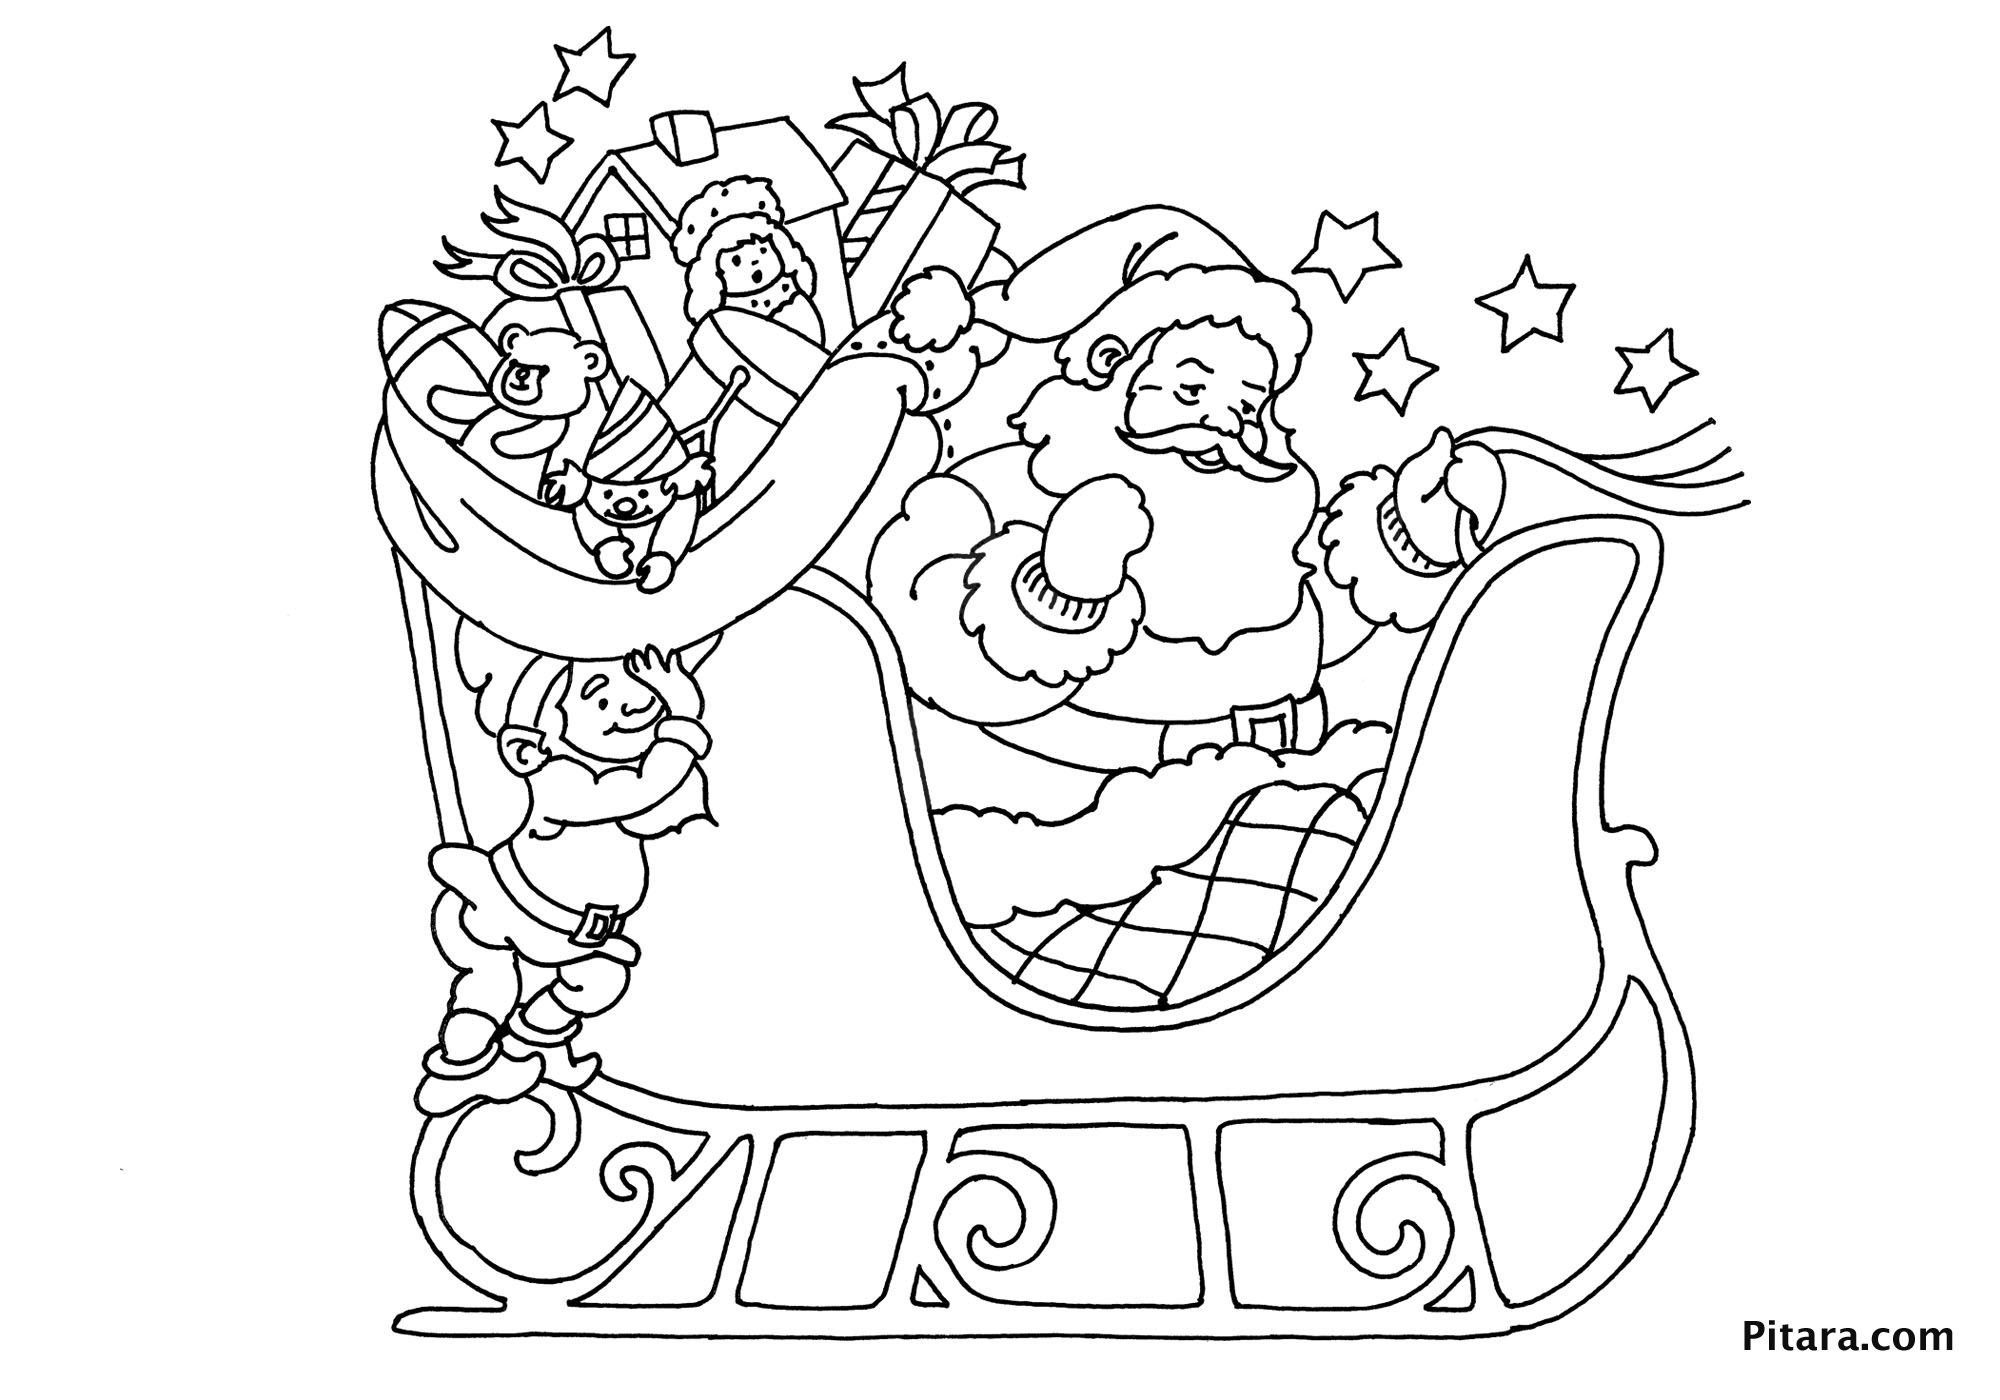 Christmas Color Pages For Kids Christmas Coloring Pages For Kids Pitara Kids Network